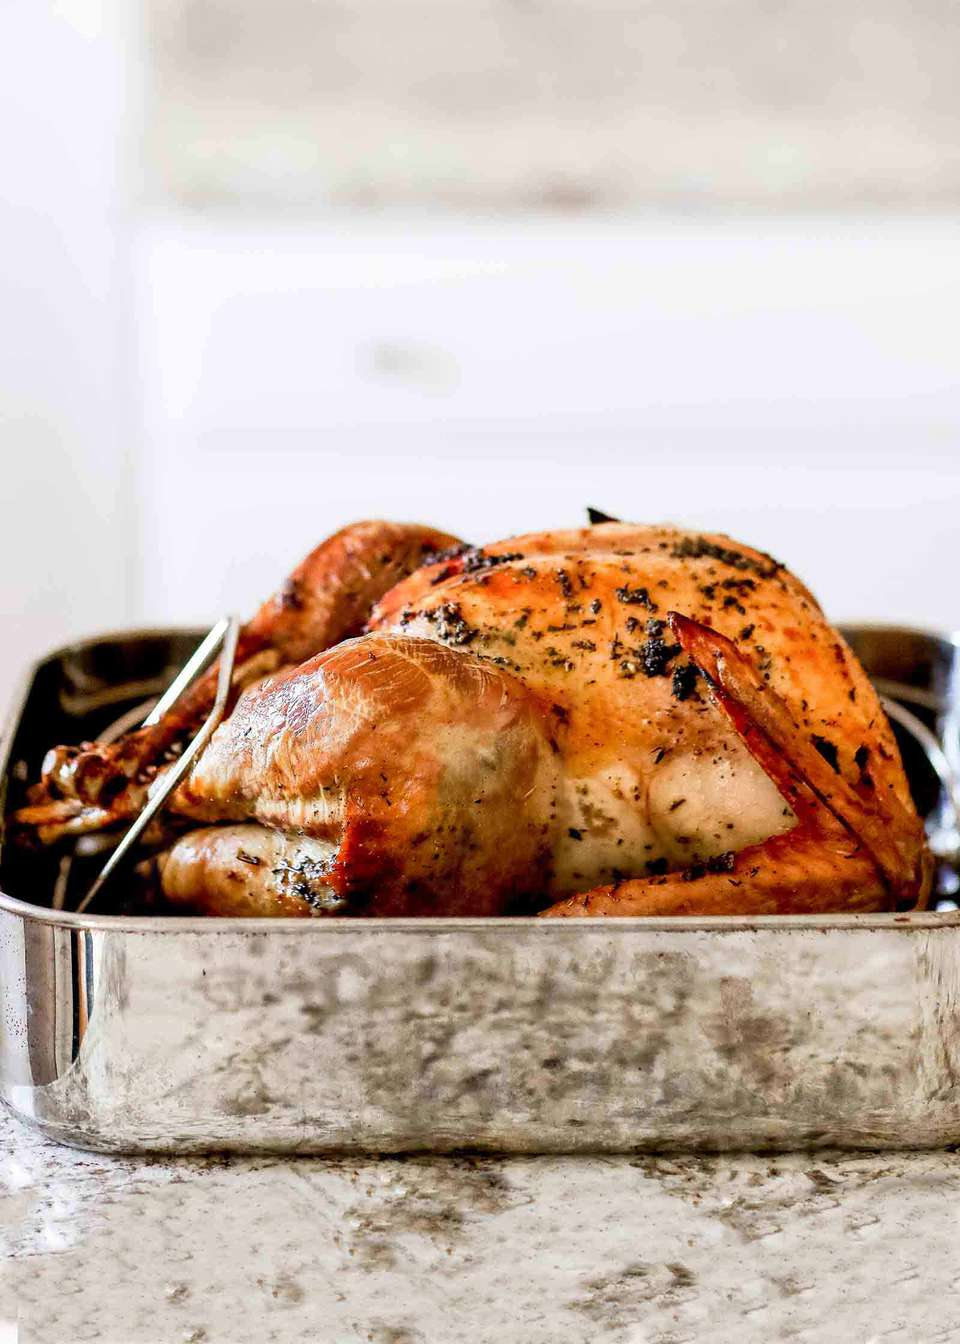 Dry Brined Turkey in Roasting Pan